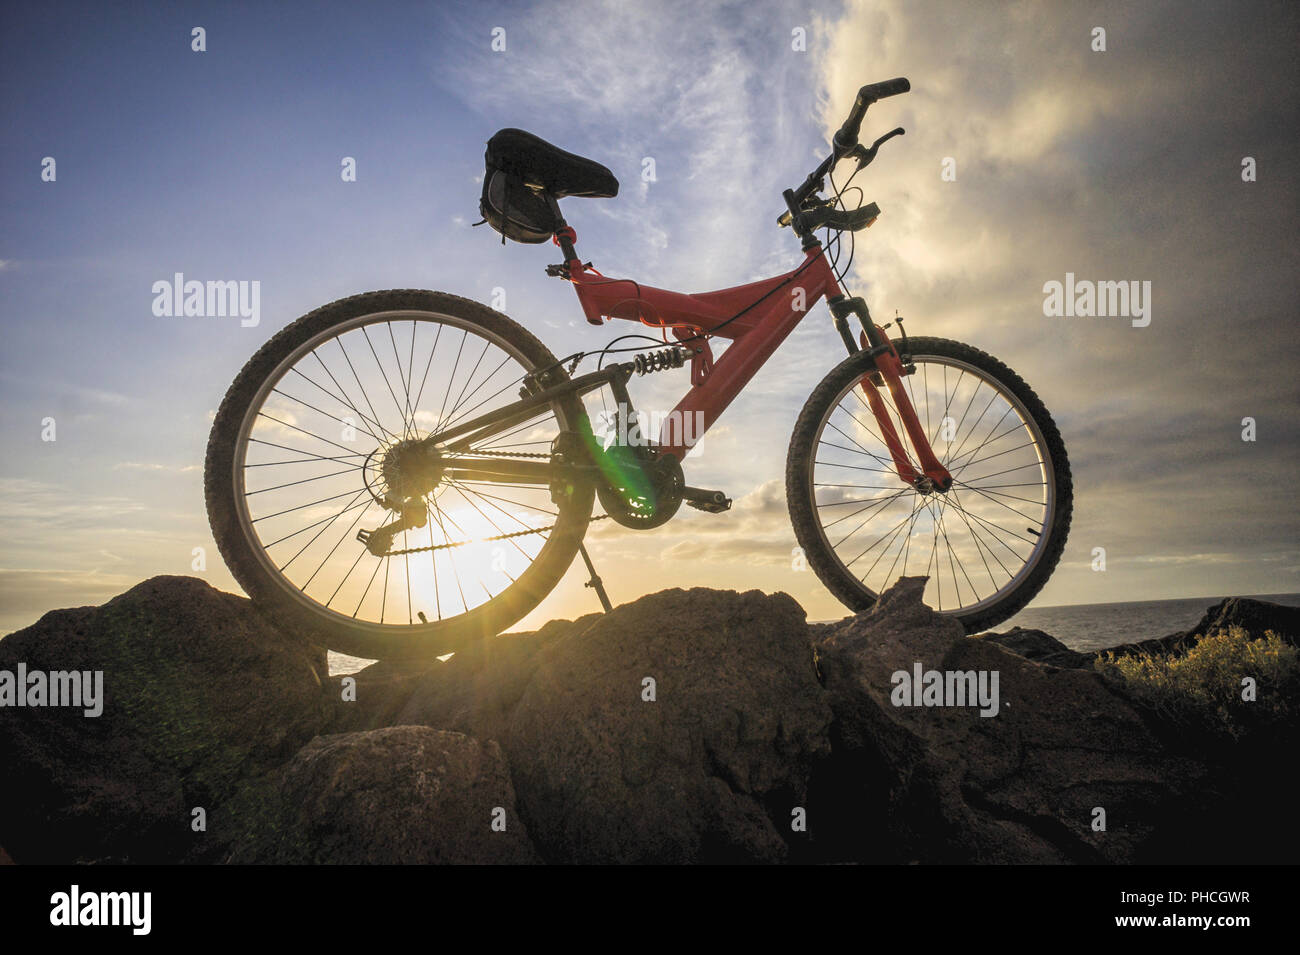 Background Mountain Bike Wallpaper High Resolution Stock Photography And Images Alamy